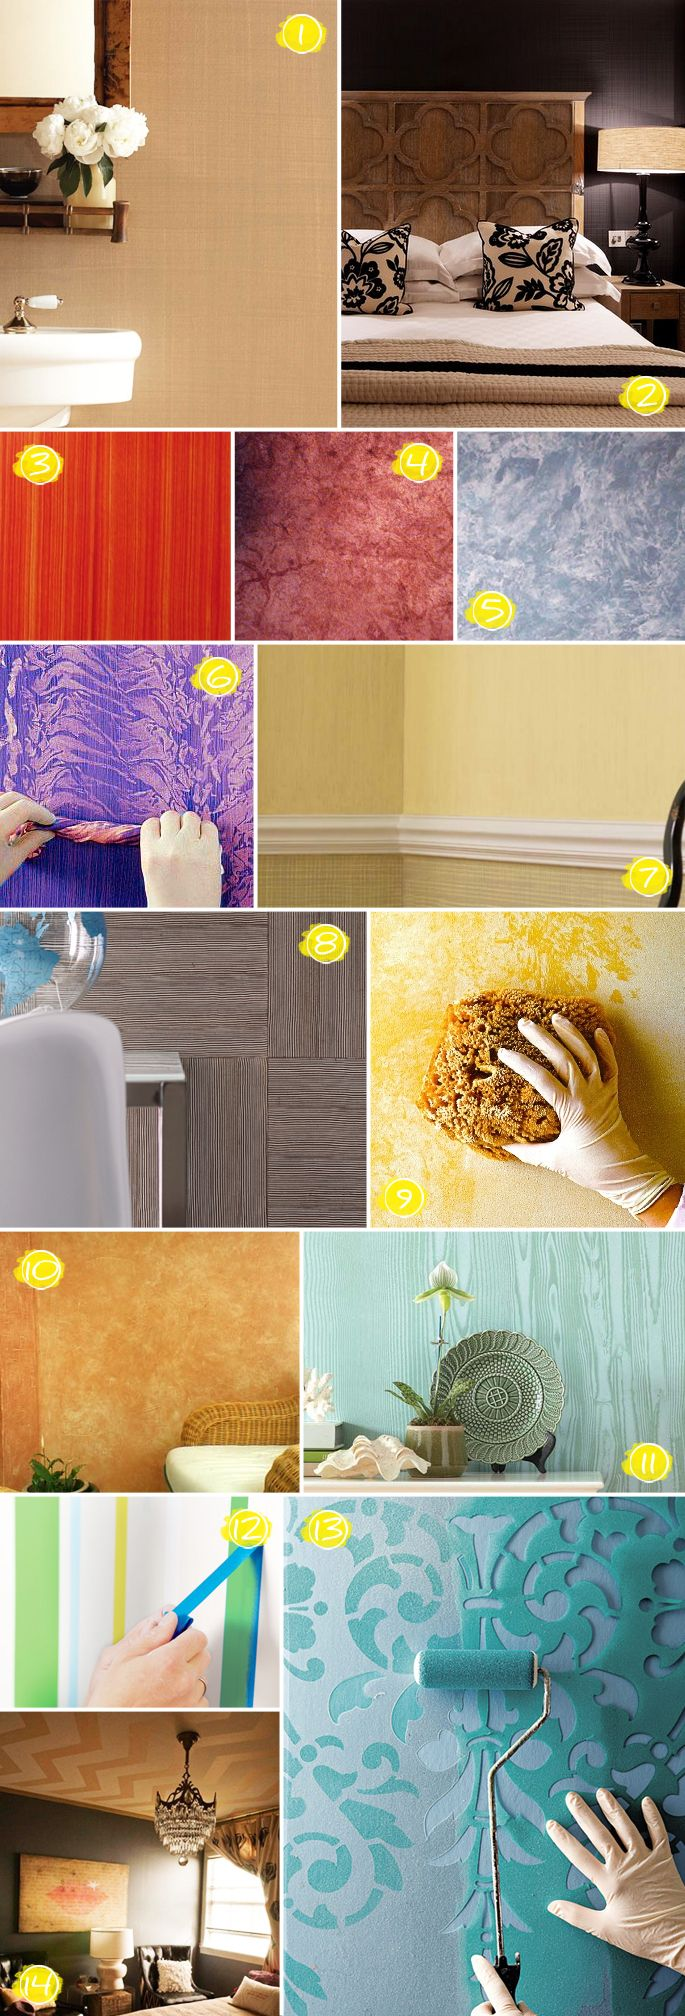 best 25 creative wall painting ideas on pinterest - Walls Paints Design